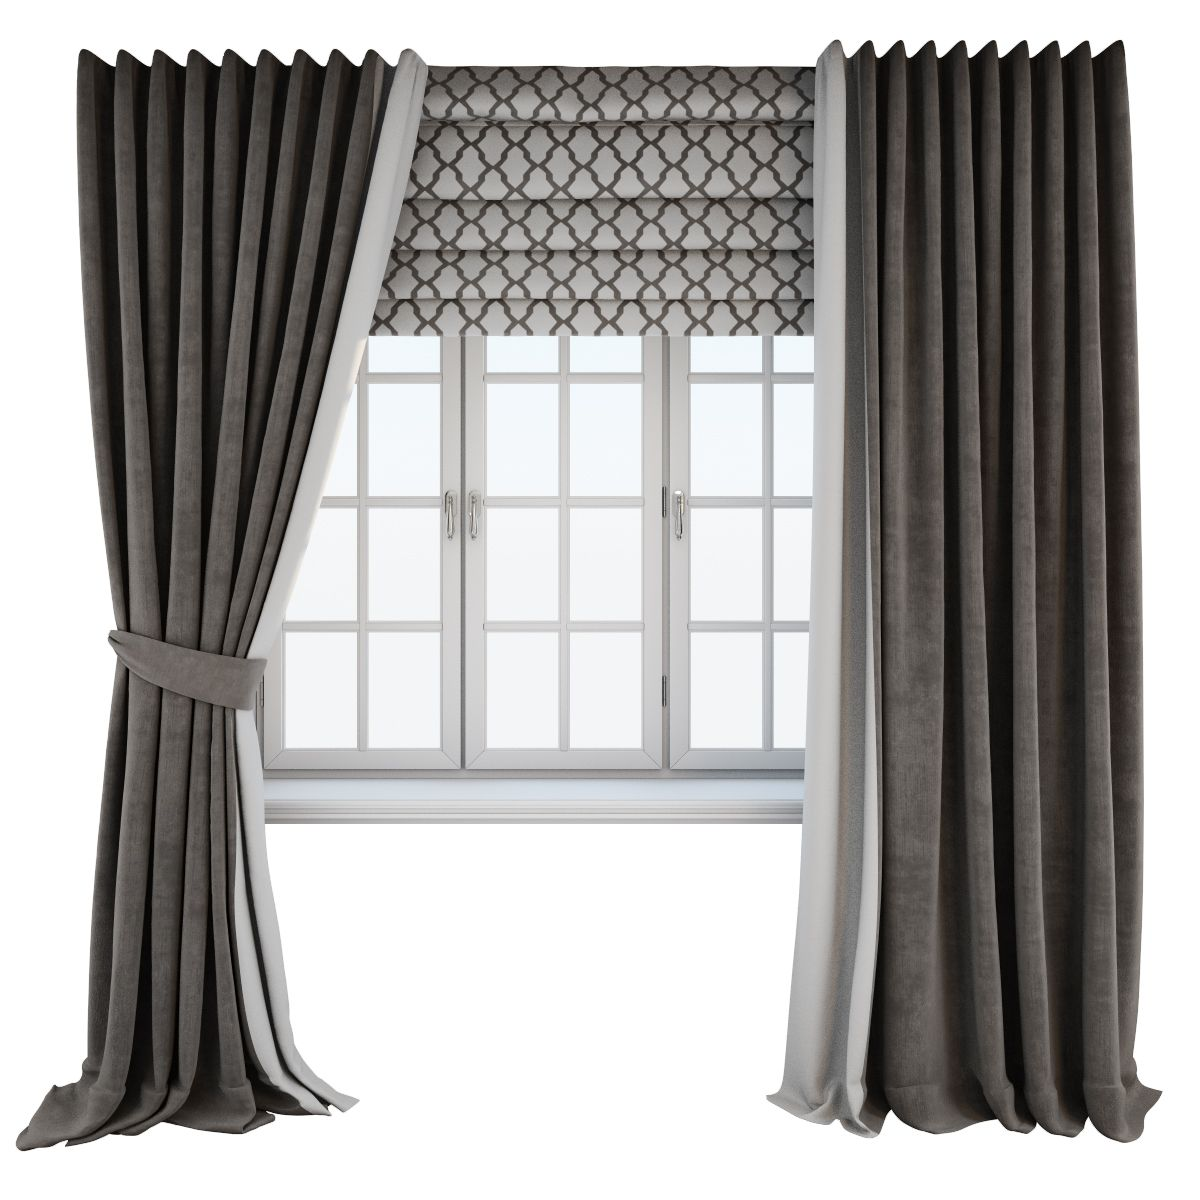 Dark Brown Floor Length Curtains Straight And With A Tieback